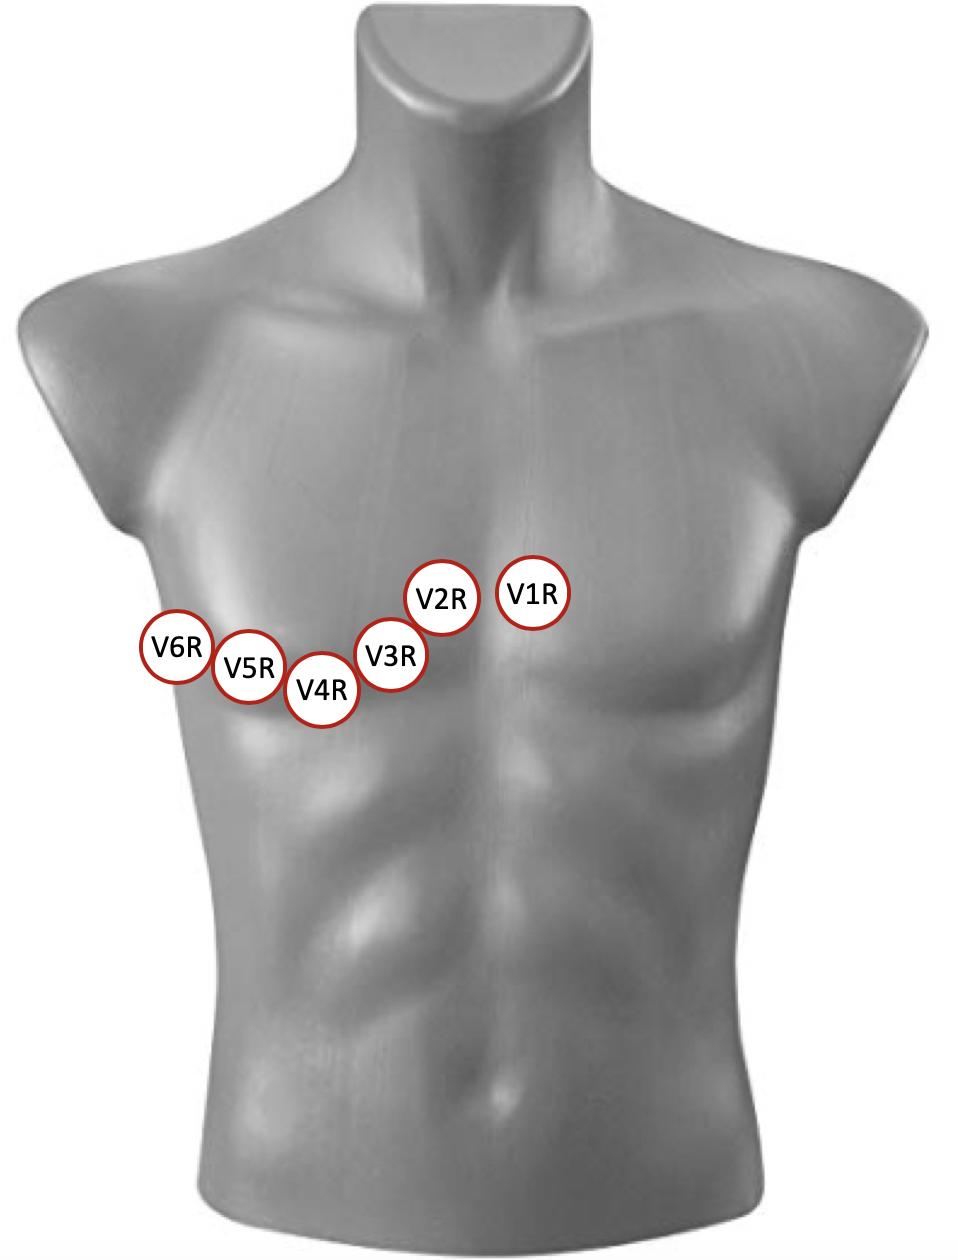 Figure 2. Placement of right-sided leads V1R-V6R  Right-sided leads are placed as a mirror image of the standard precordial leads. V1R is placed at the left sternal border, in the 4th intercostal space. V2R is placed at the right sternal border, in the 4th intercostal space. V3R is placed between V2R and V4R. V4R is placed at the mid-clavicular line, in the 5th intercostal space. V5R is placed at the anterior axillary line, in the 5th intercostal space. V6R is placed in the mid-axillary line, in the 5th intercostal space. Alternatively, V4R can be obtained as the sole right-sided lead, with the remaining precordial leads placed in standard fashion.